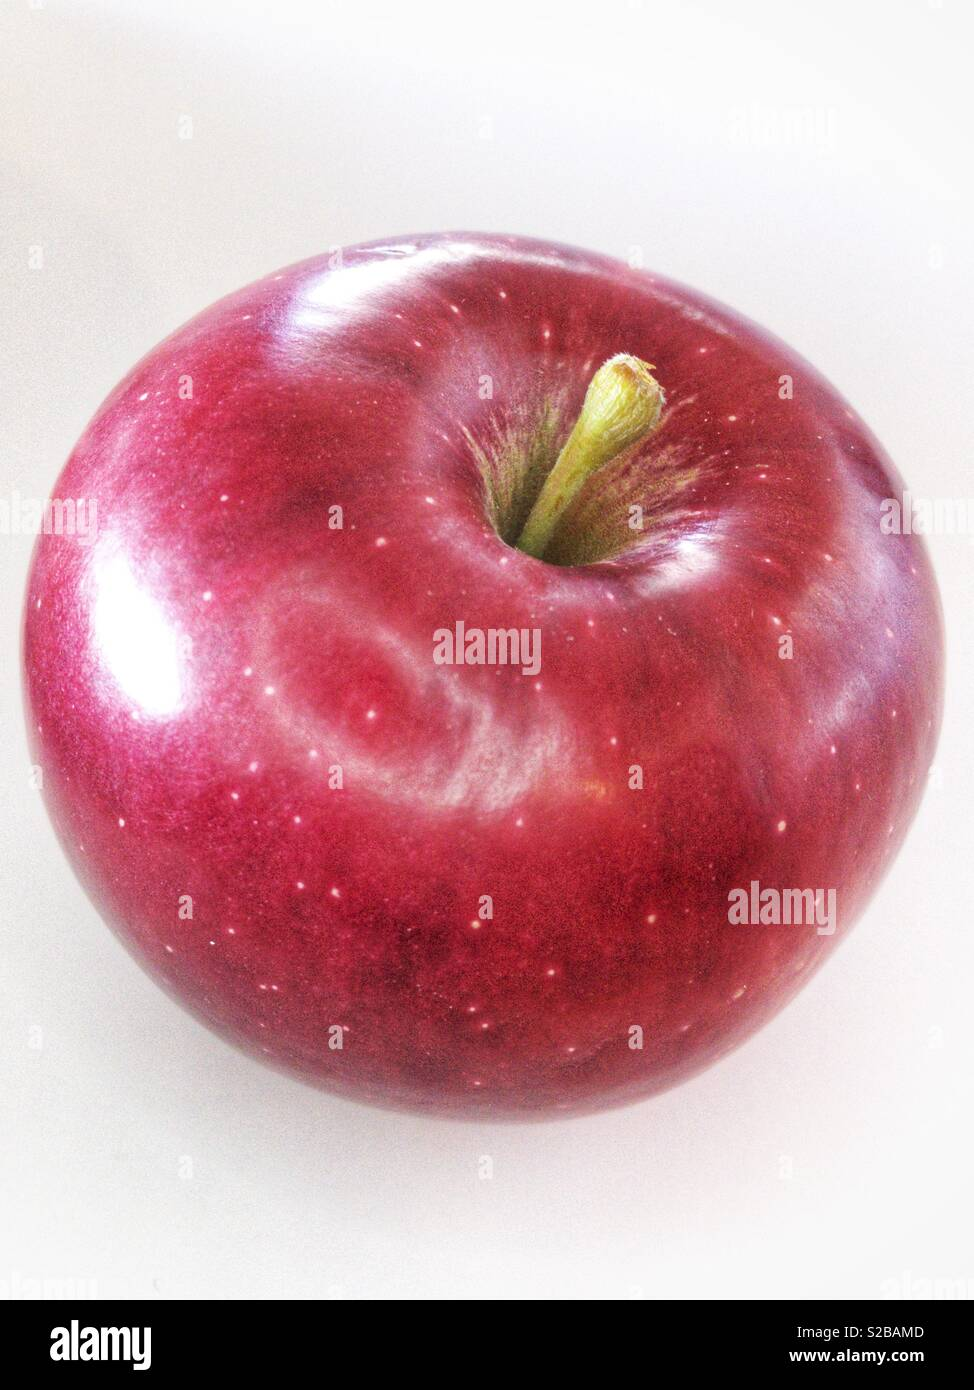 Perfect Red Apple - Stock Image